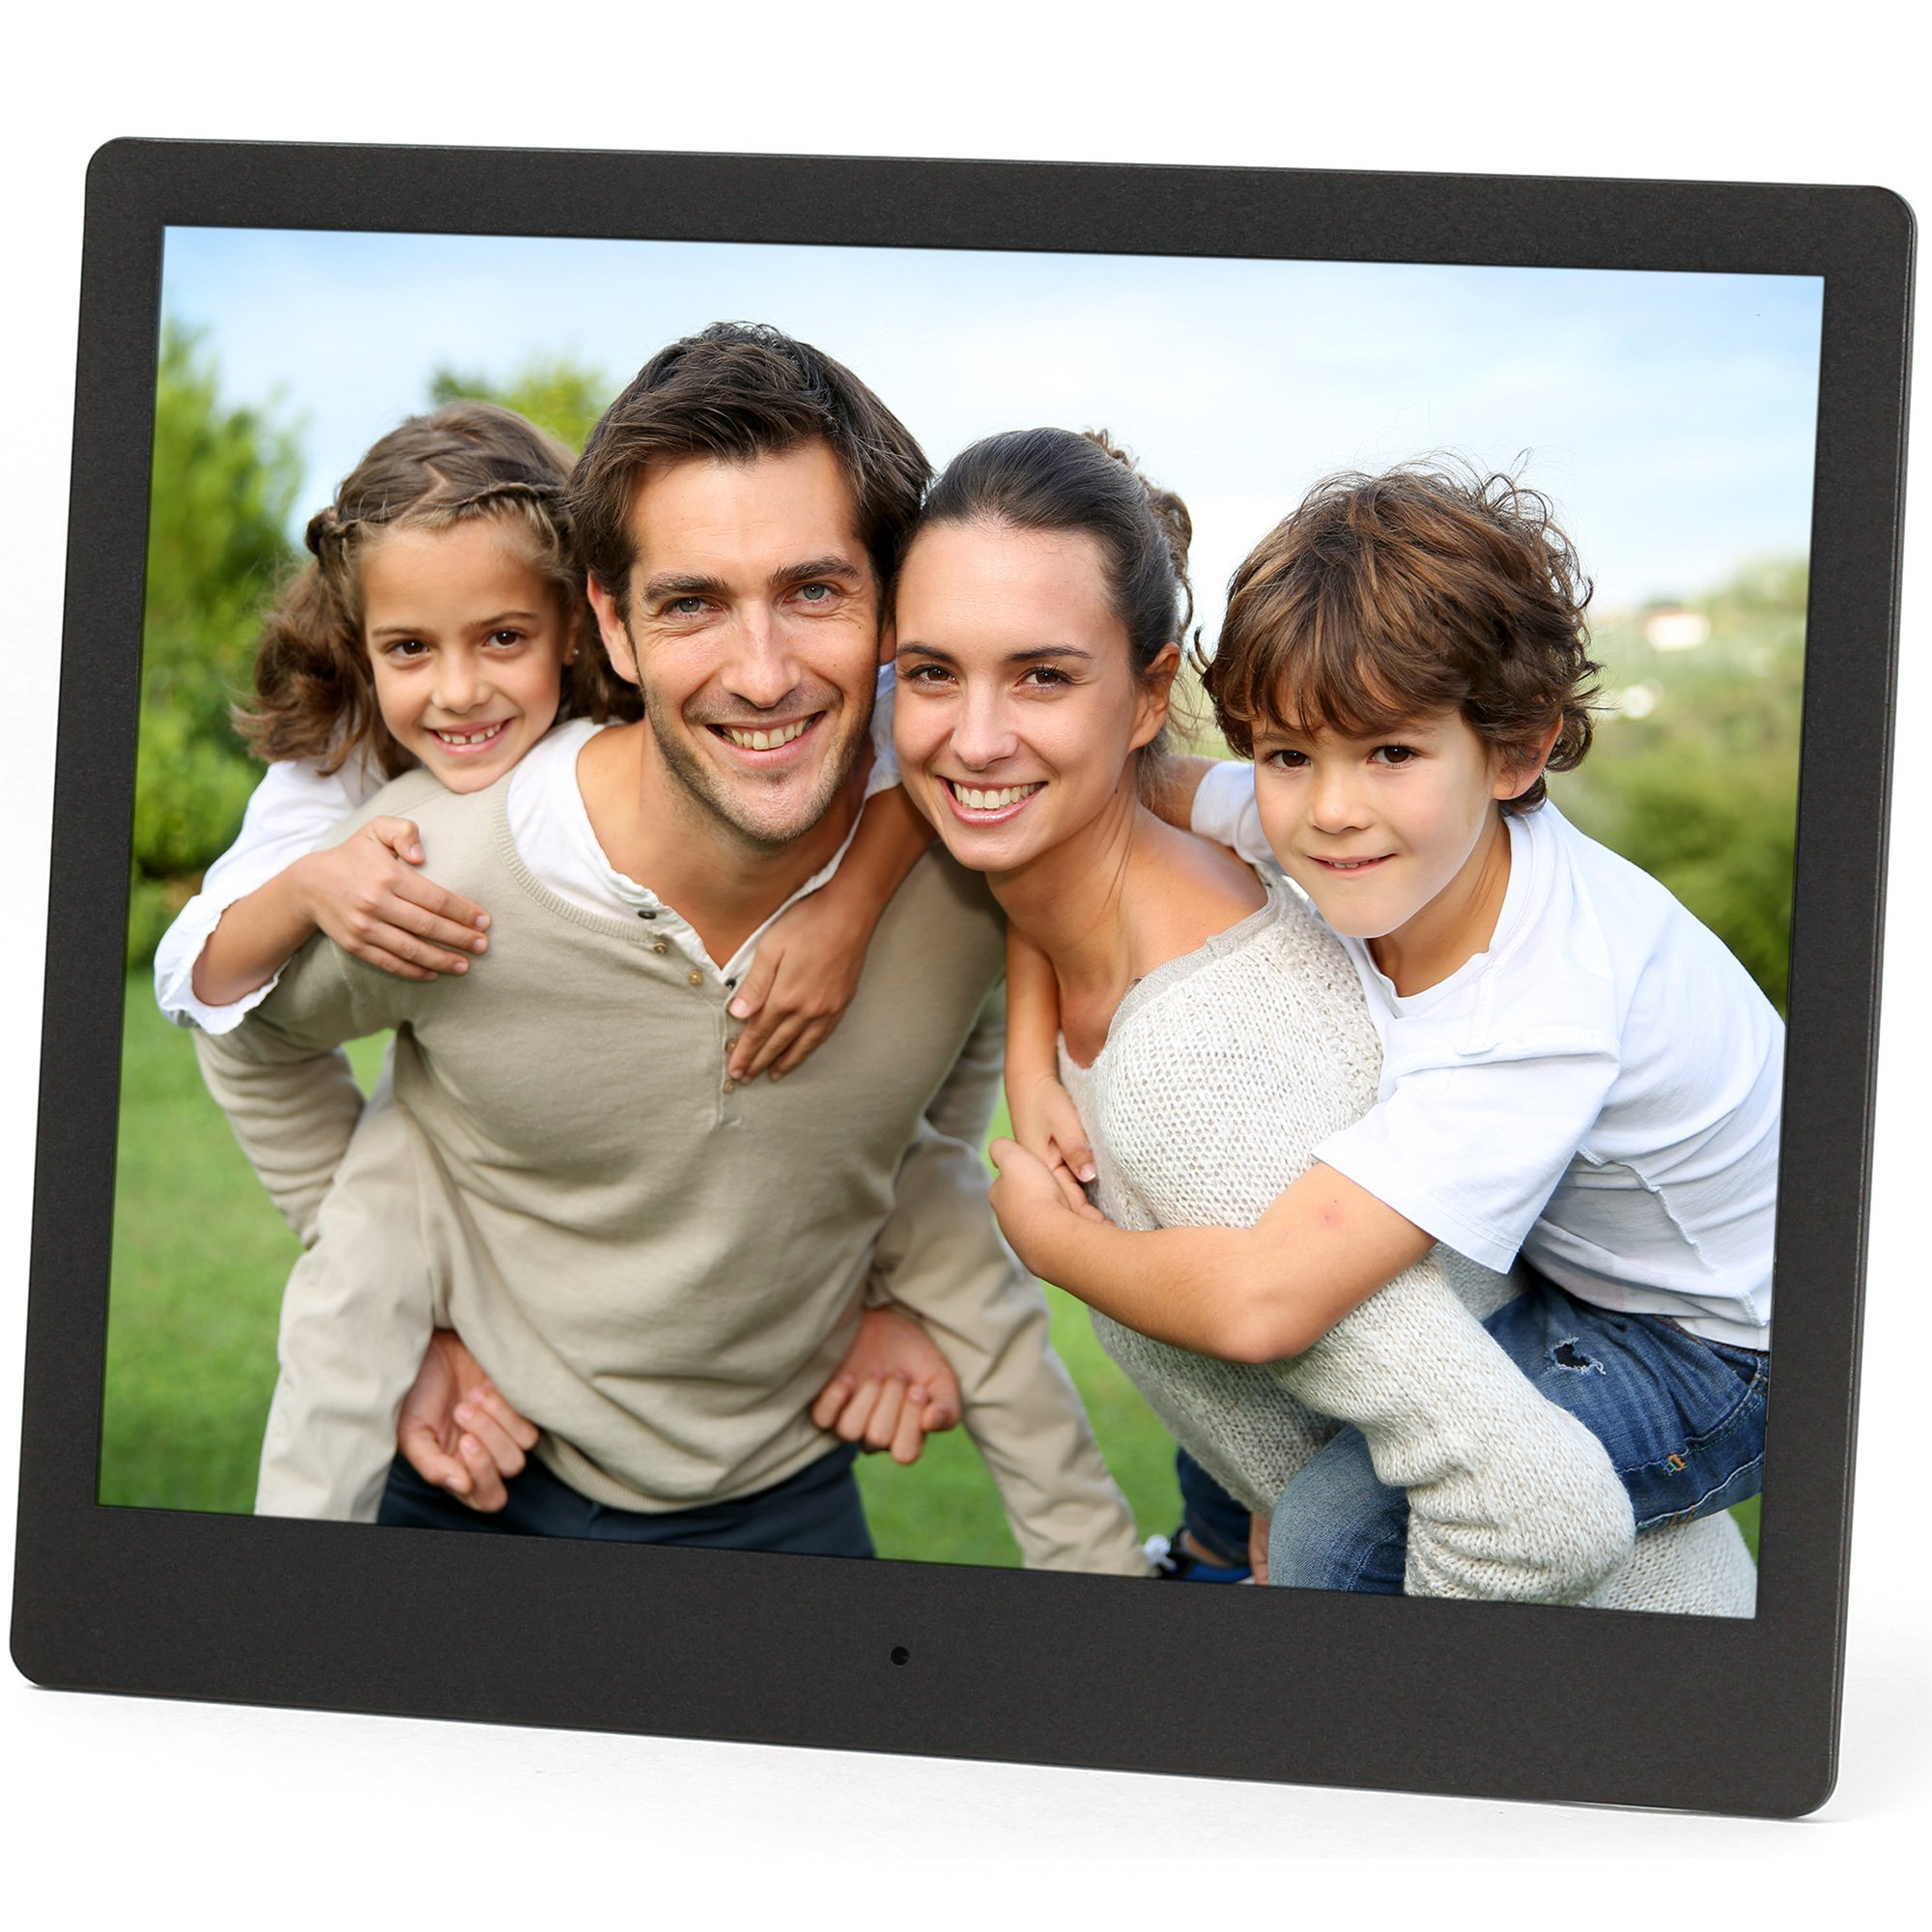 Micca NEO 10-Inch Digital Photo Frame with 8GB Storage, High Resolution IPS LCD, MP3 Music and 720P HD Video Playback, Auto On/Off Timer, Ultra Slim Design (M973A) by Micca